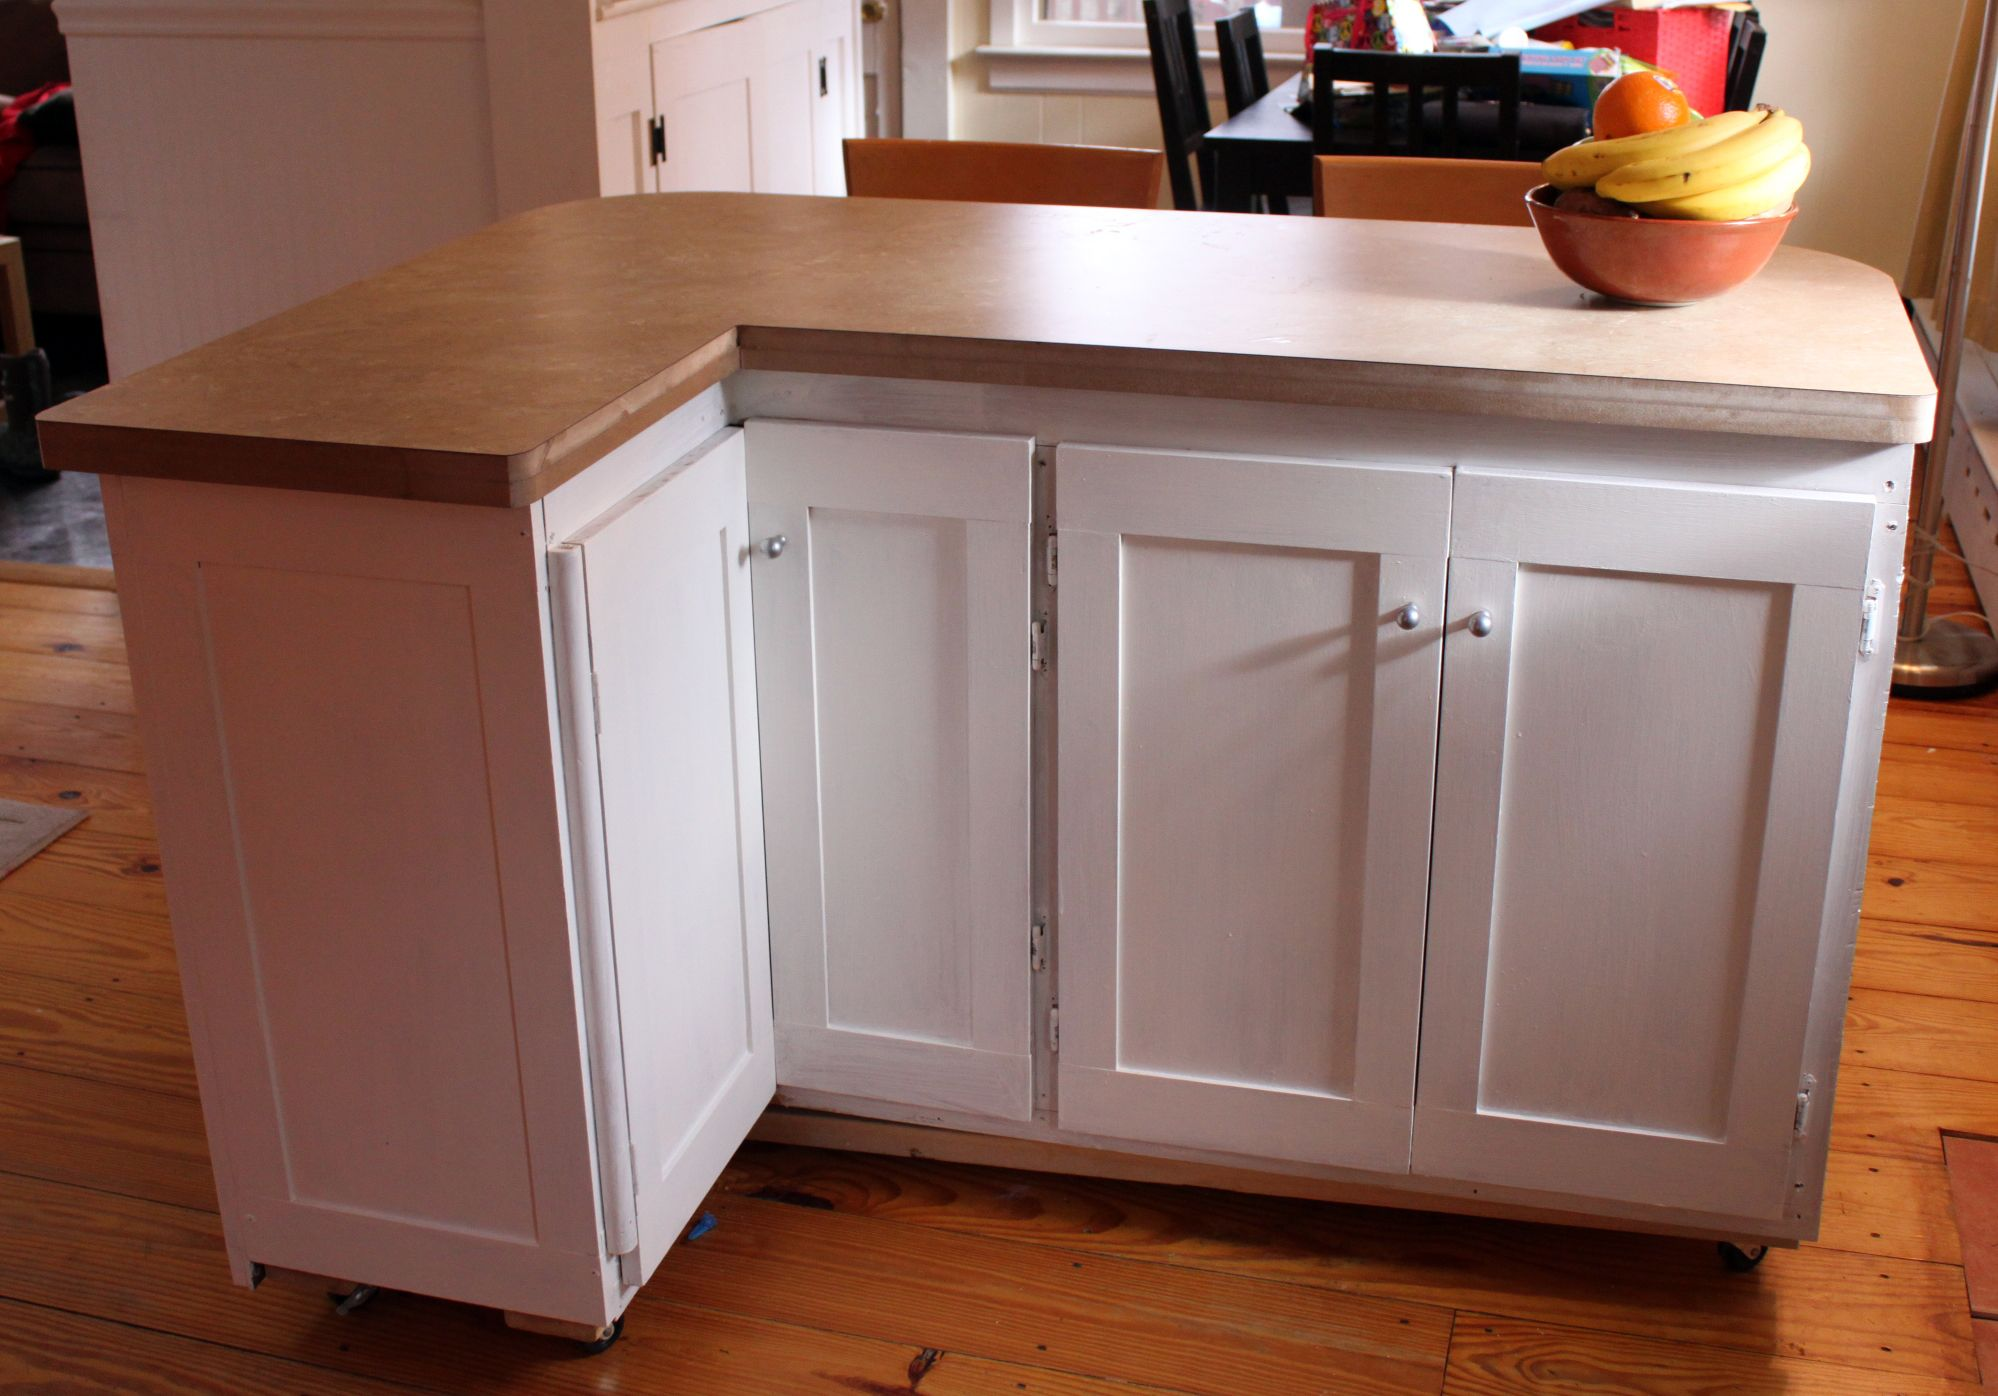 96 best ideas about diy - kitchen islands on pinterest | kitchen